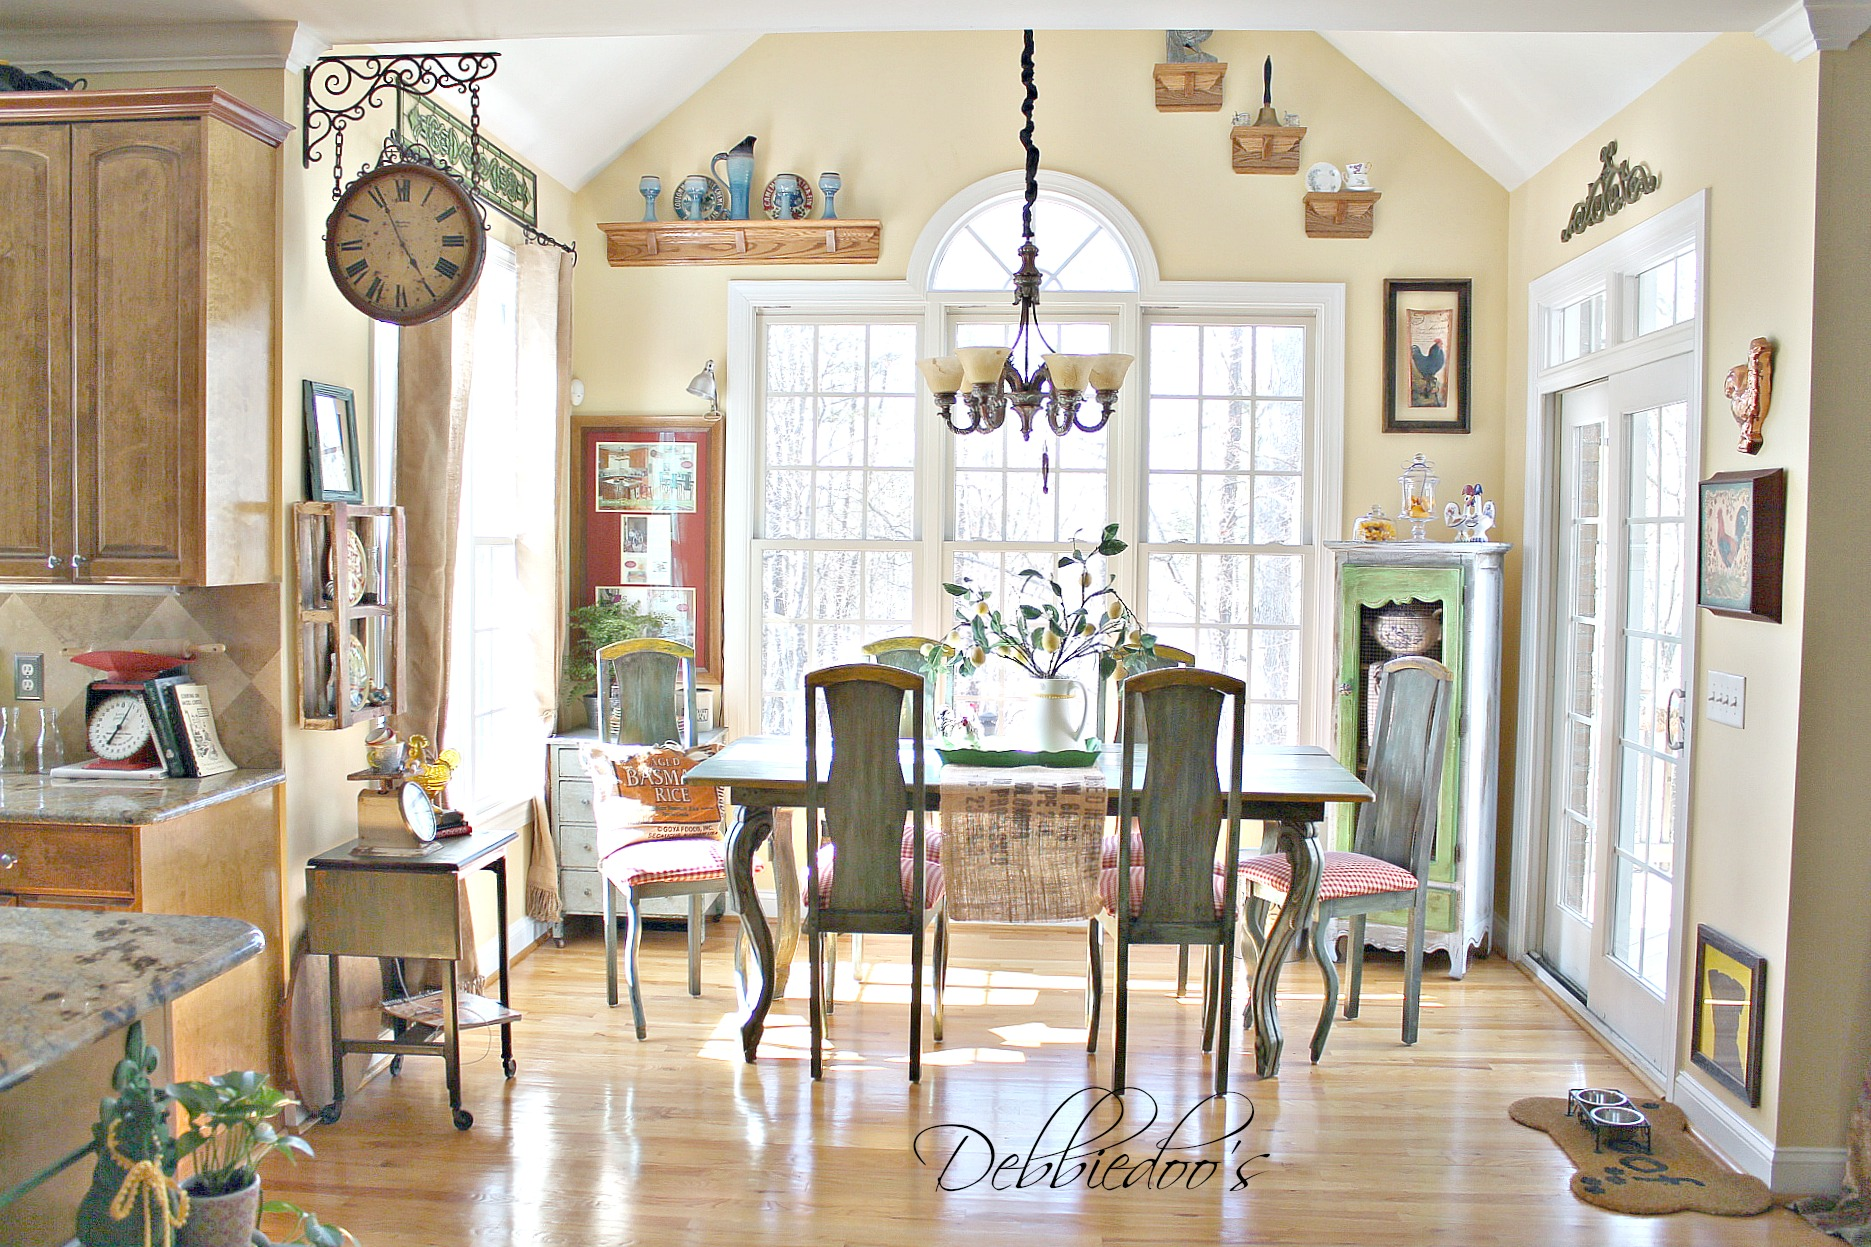 French Country Kitchen style Freshened up - Debbiedoos